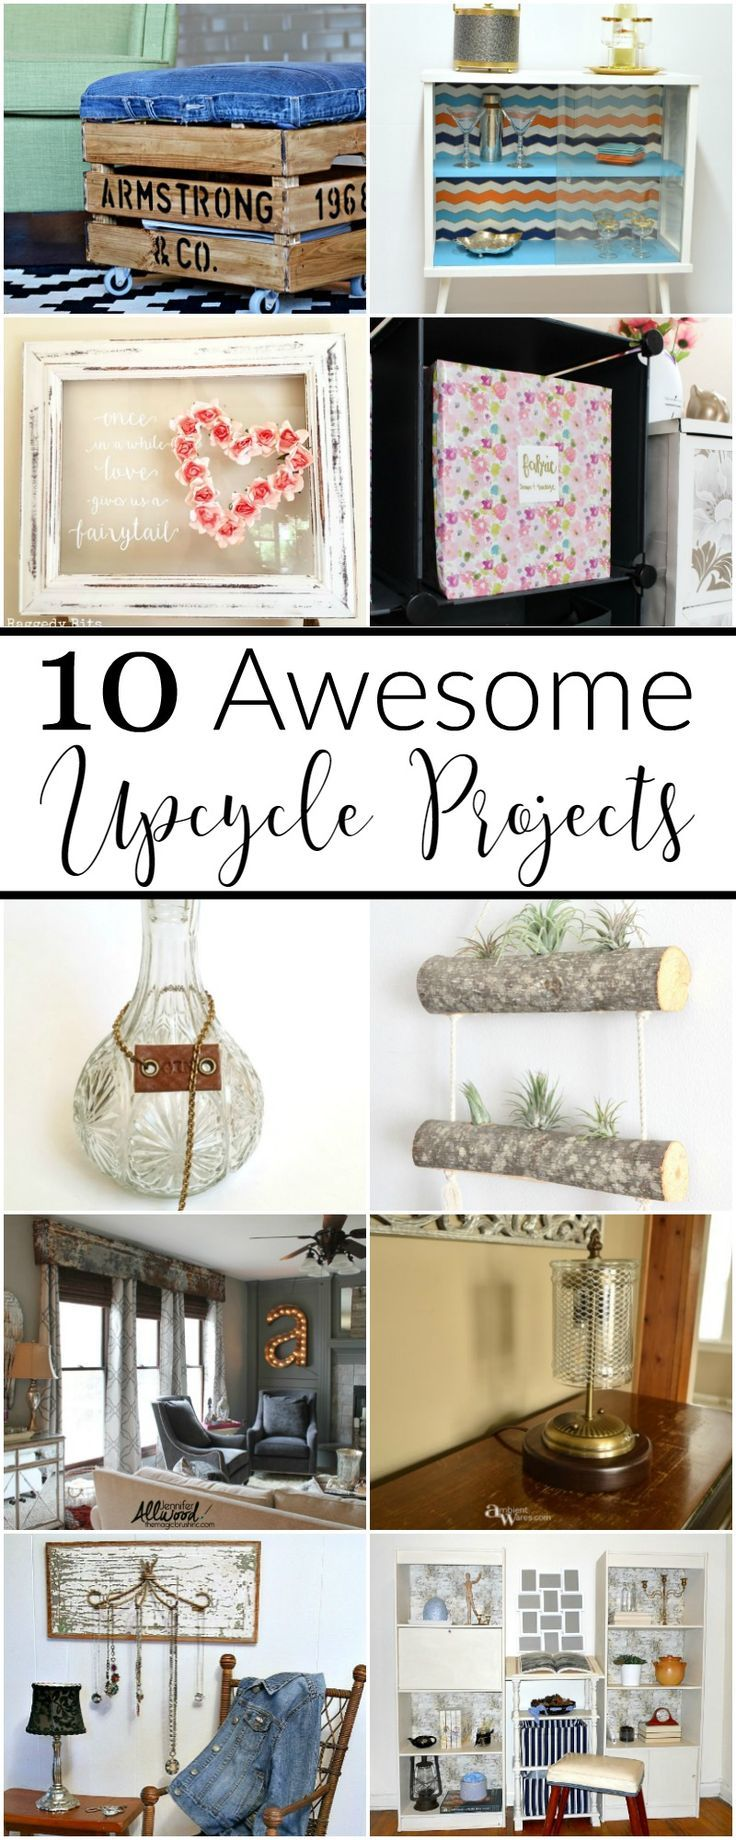 Upcycle Projects | Upcycle, Organizations and Funky junk